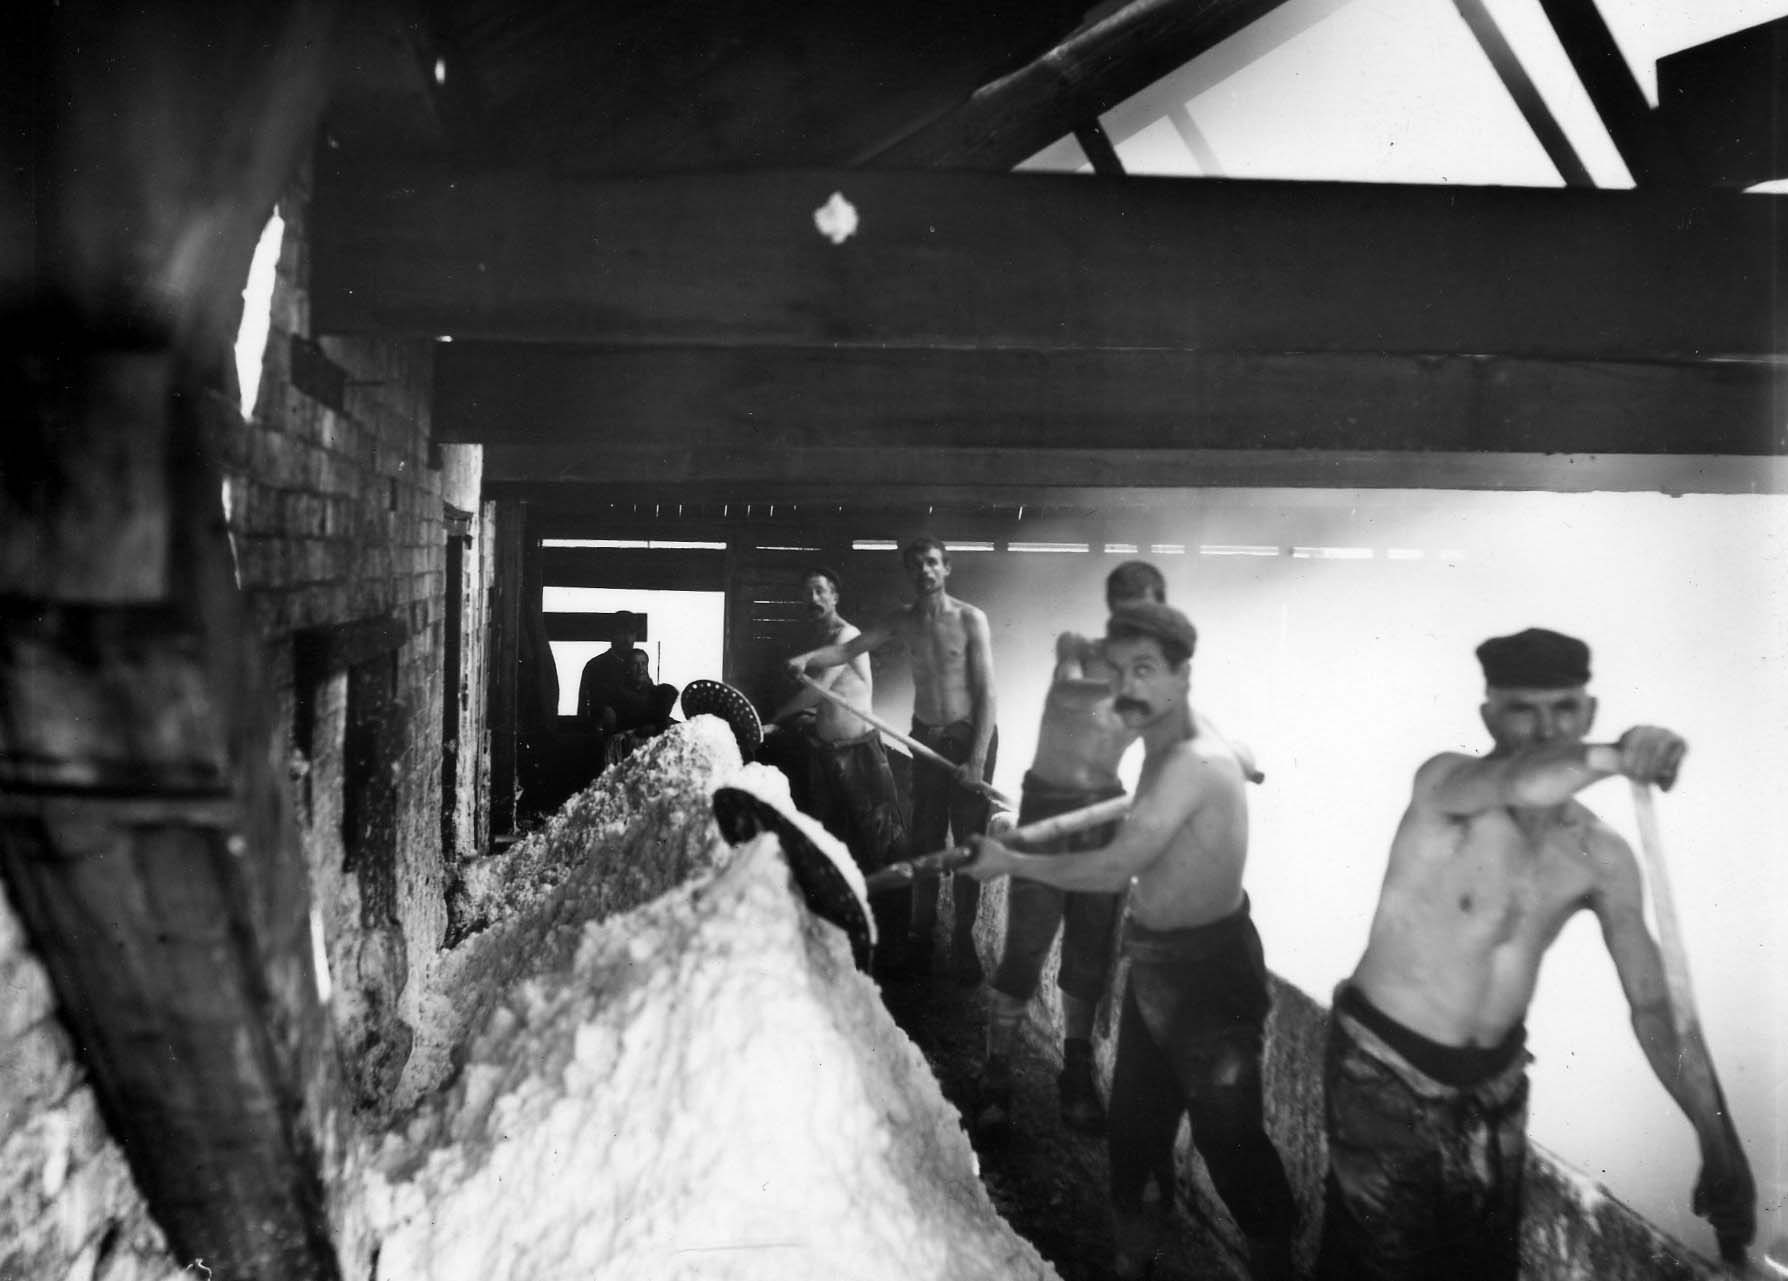 a black and white photo of men with shovels shovelling slt from a steaming pan